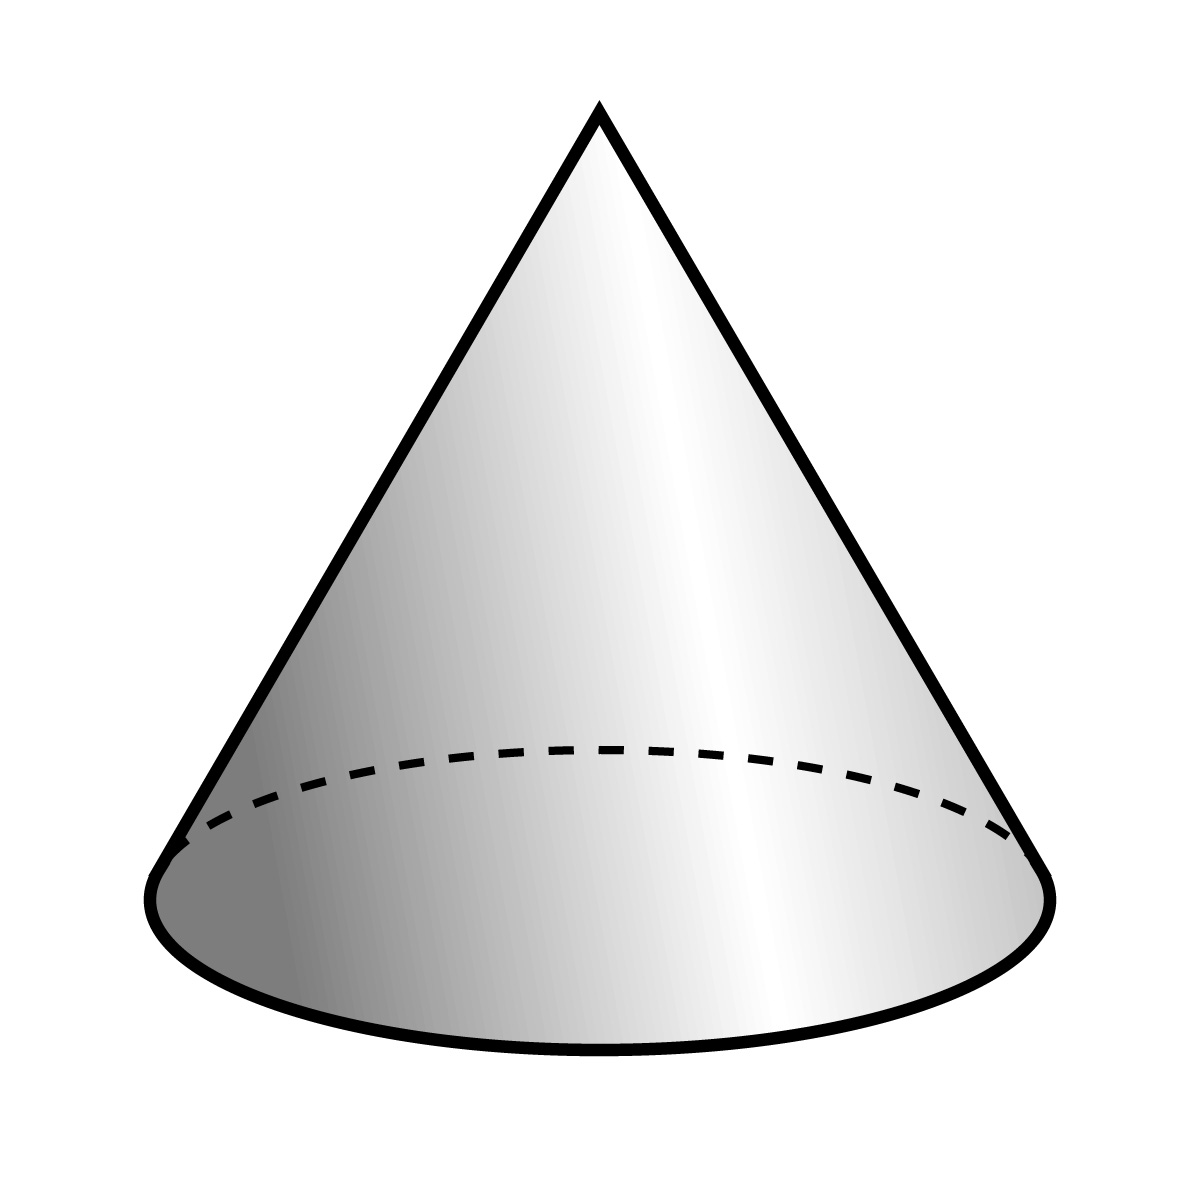 3D clipart cone shape Clipart Clipart geometry%20clipart Images Free